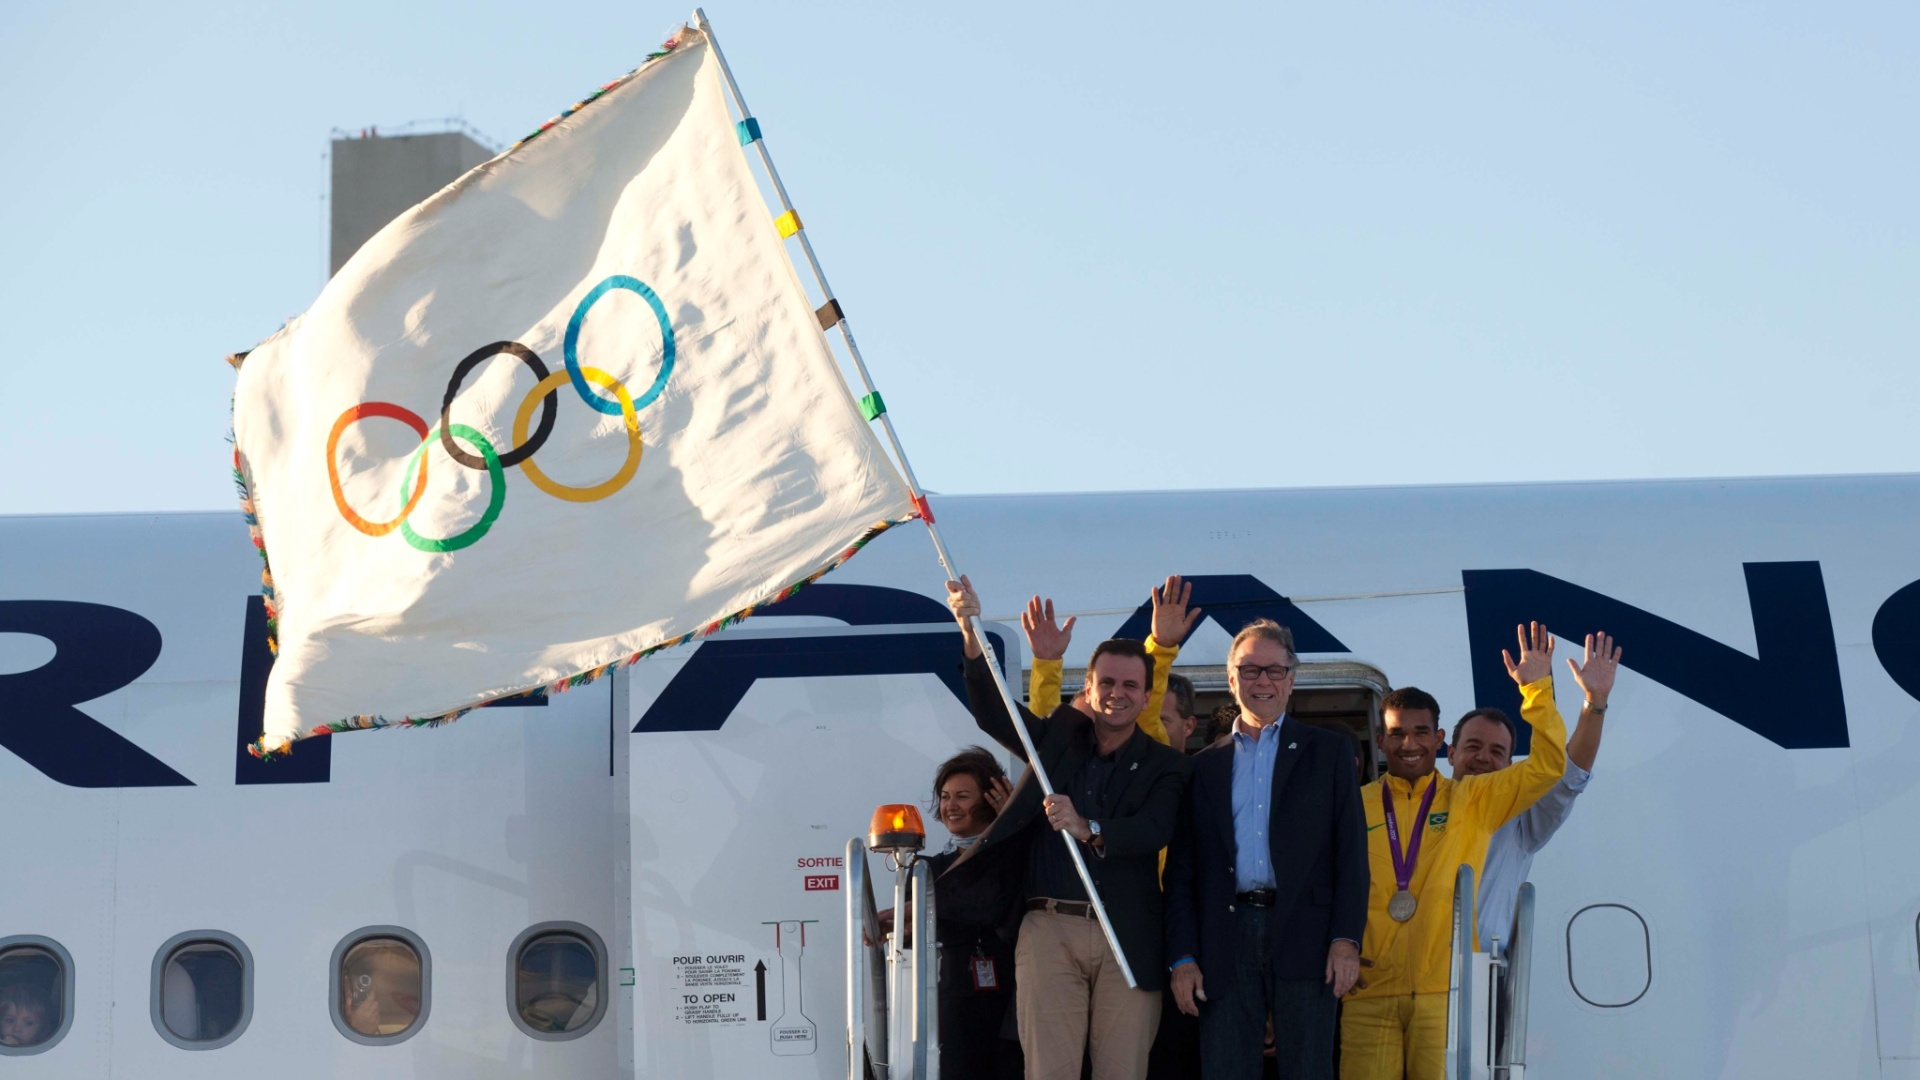 Eduardo Paes e Carlos Arthur Nuzman desembarcaram com bandeira olmpica no Rio